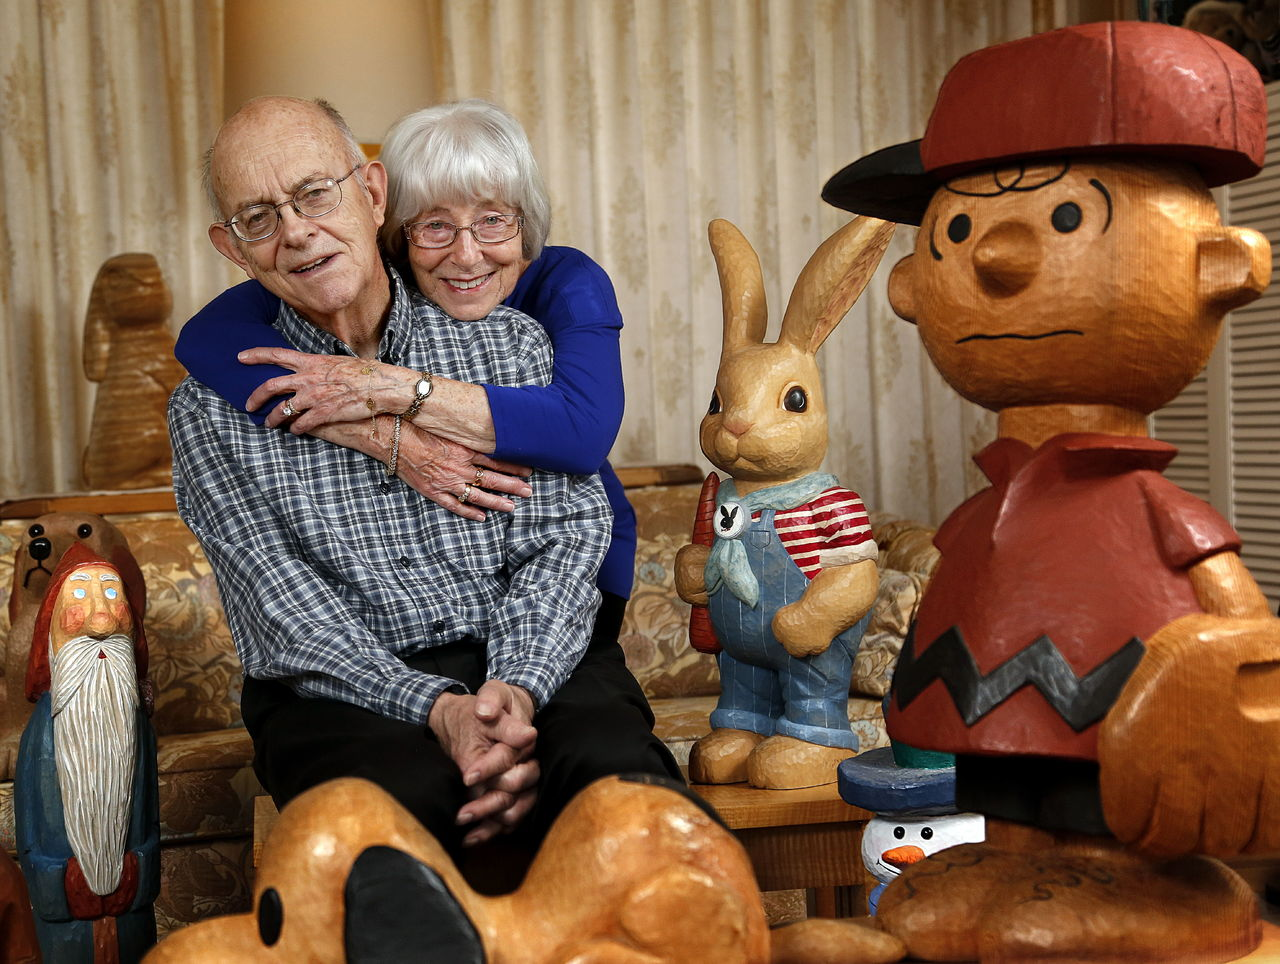 At home in Everett, Ed and Betty Morrow, both 81, enjoy the company of some of Ed's lifelike creations last week. The Morrows were honored by the Everett Museum of History for long-time community involvement, plus their efforts to establish a much-needed museum in Everett.